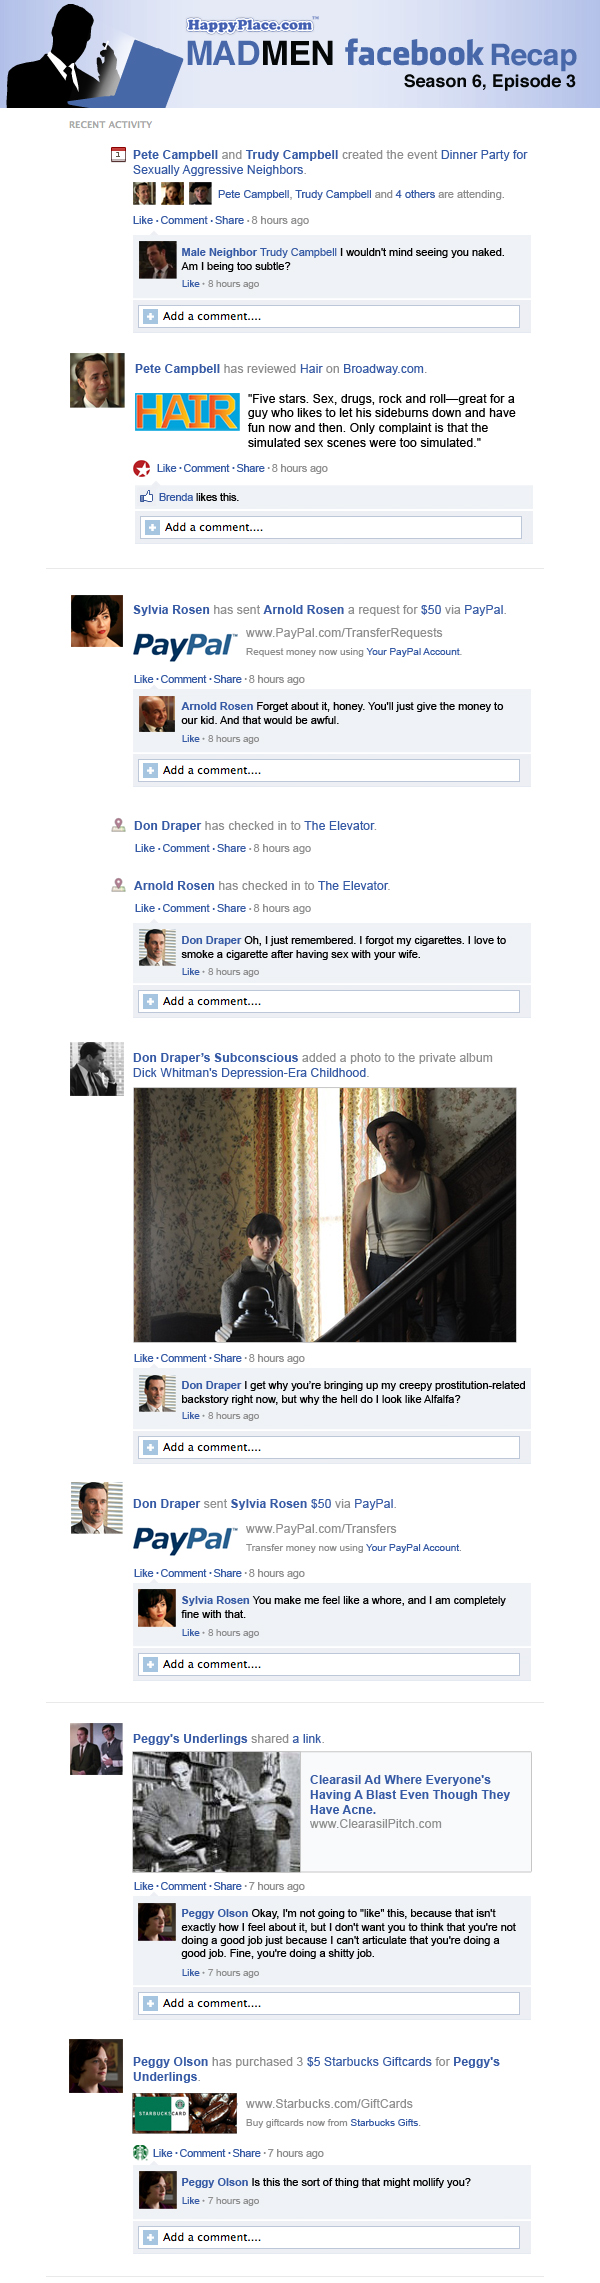 If Mad Men took place entirely on Facebook: Season 6, Episode 3.